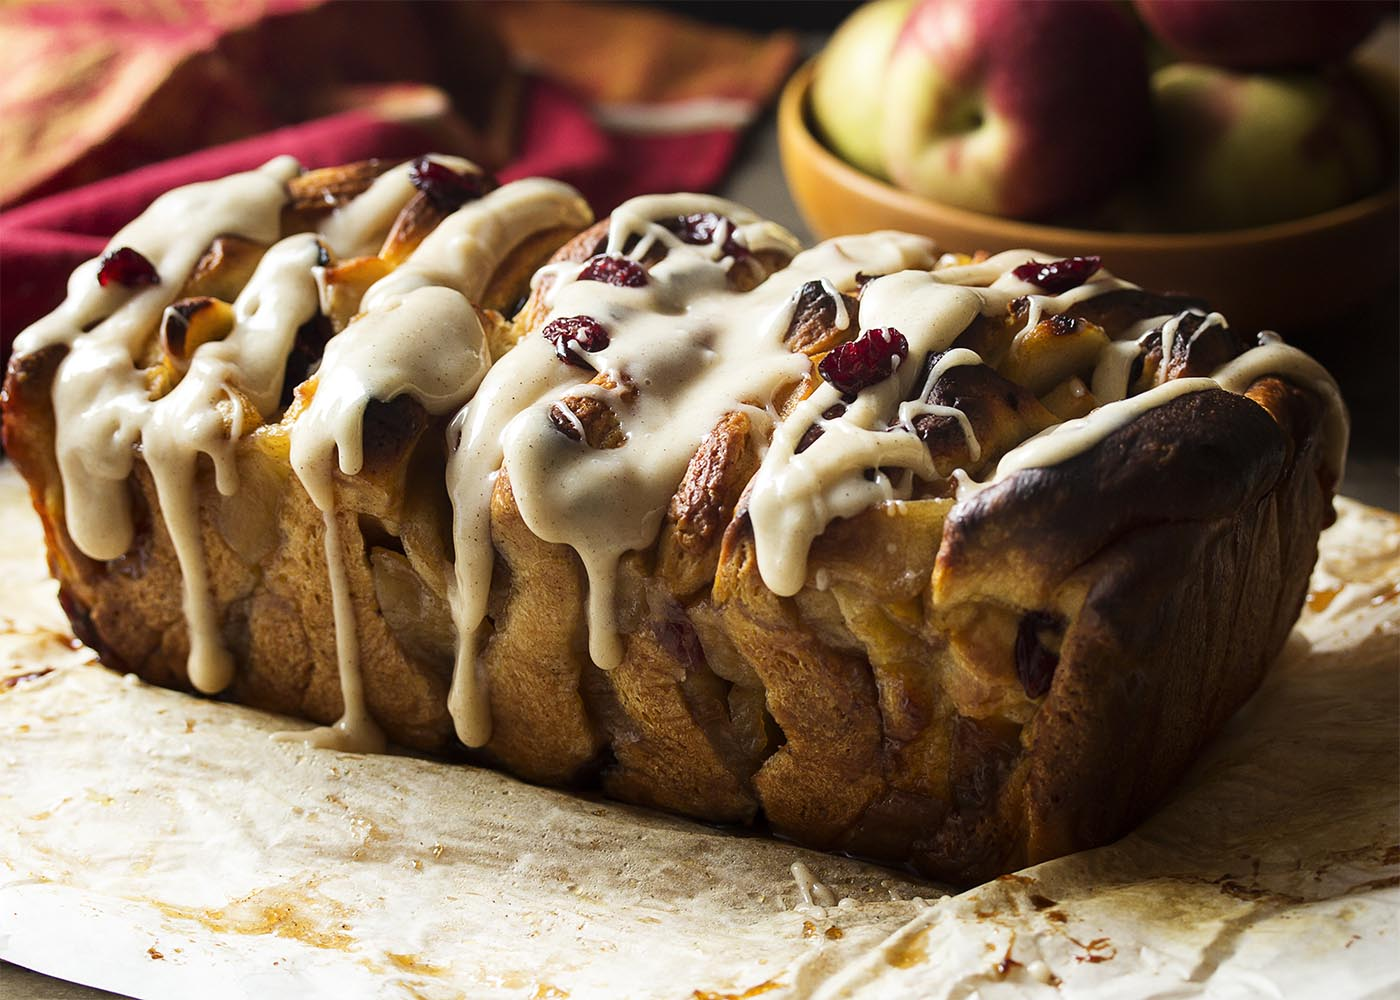 A side view of the finished apple pull apart bread with icing drizzled over the top.